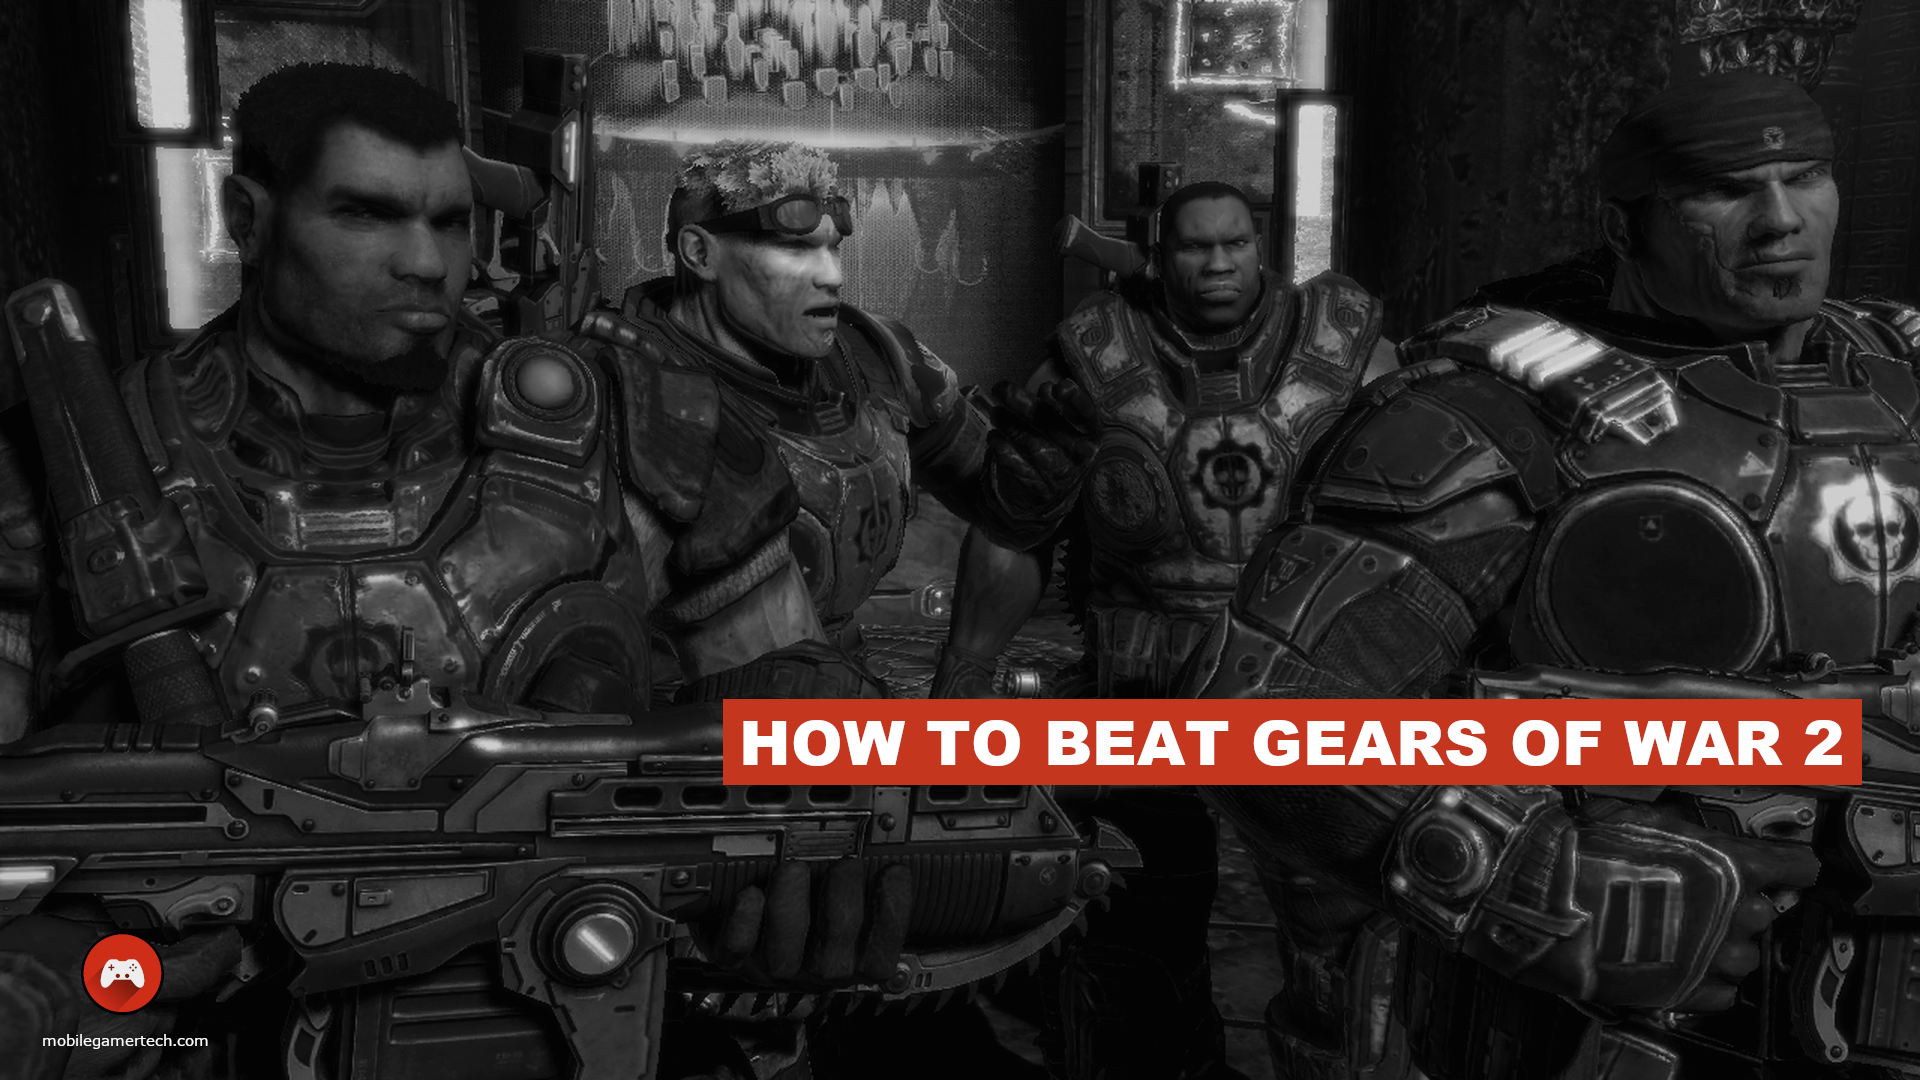 How To Beat Gears of War 2